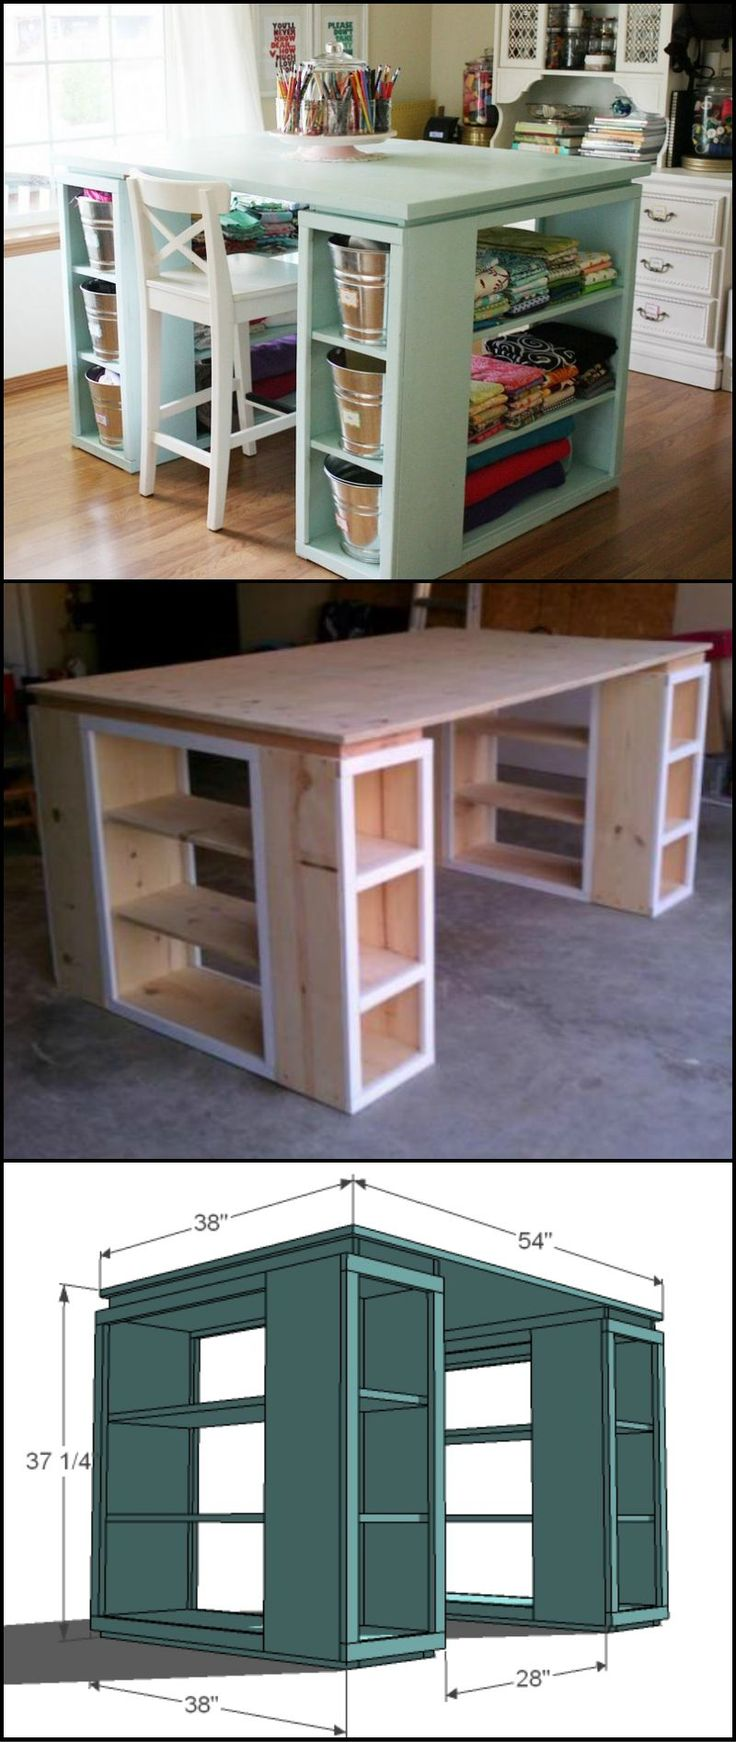 This simple craft table solves your organizing problems: http://theownerbuildernetwork.co/bik3 Find the storage system that will get your craft station organized now!